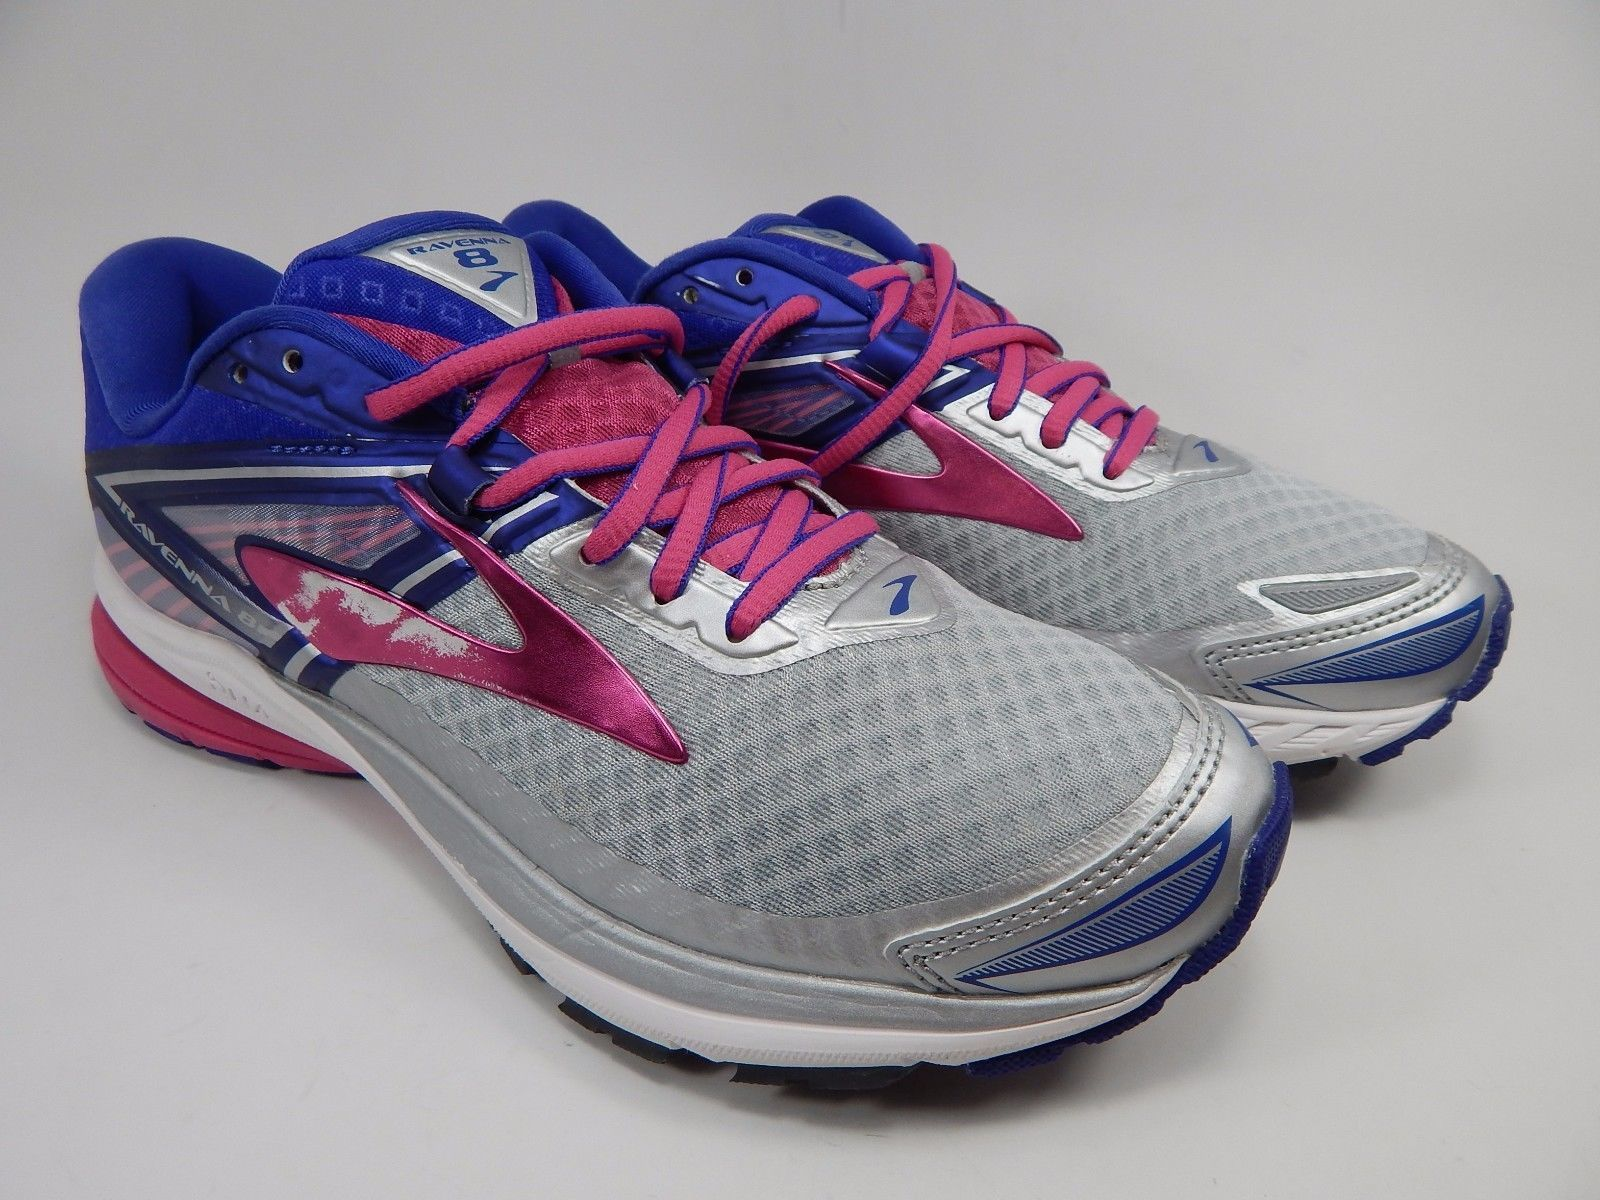 Brooks Ravenna 8 Women's Running Shoes Size US 7 M (B) EU 38 Silver 1202381B089